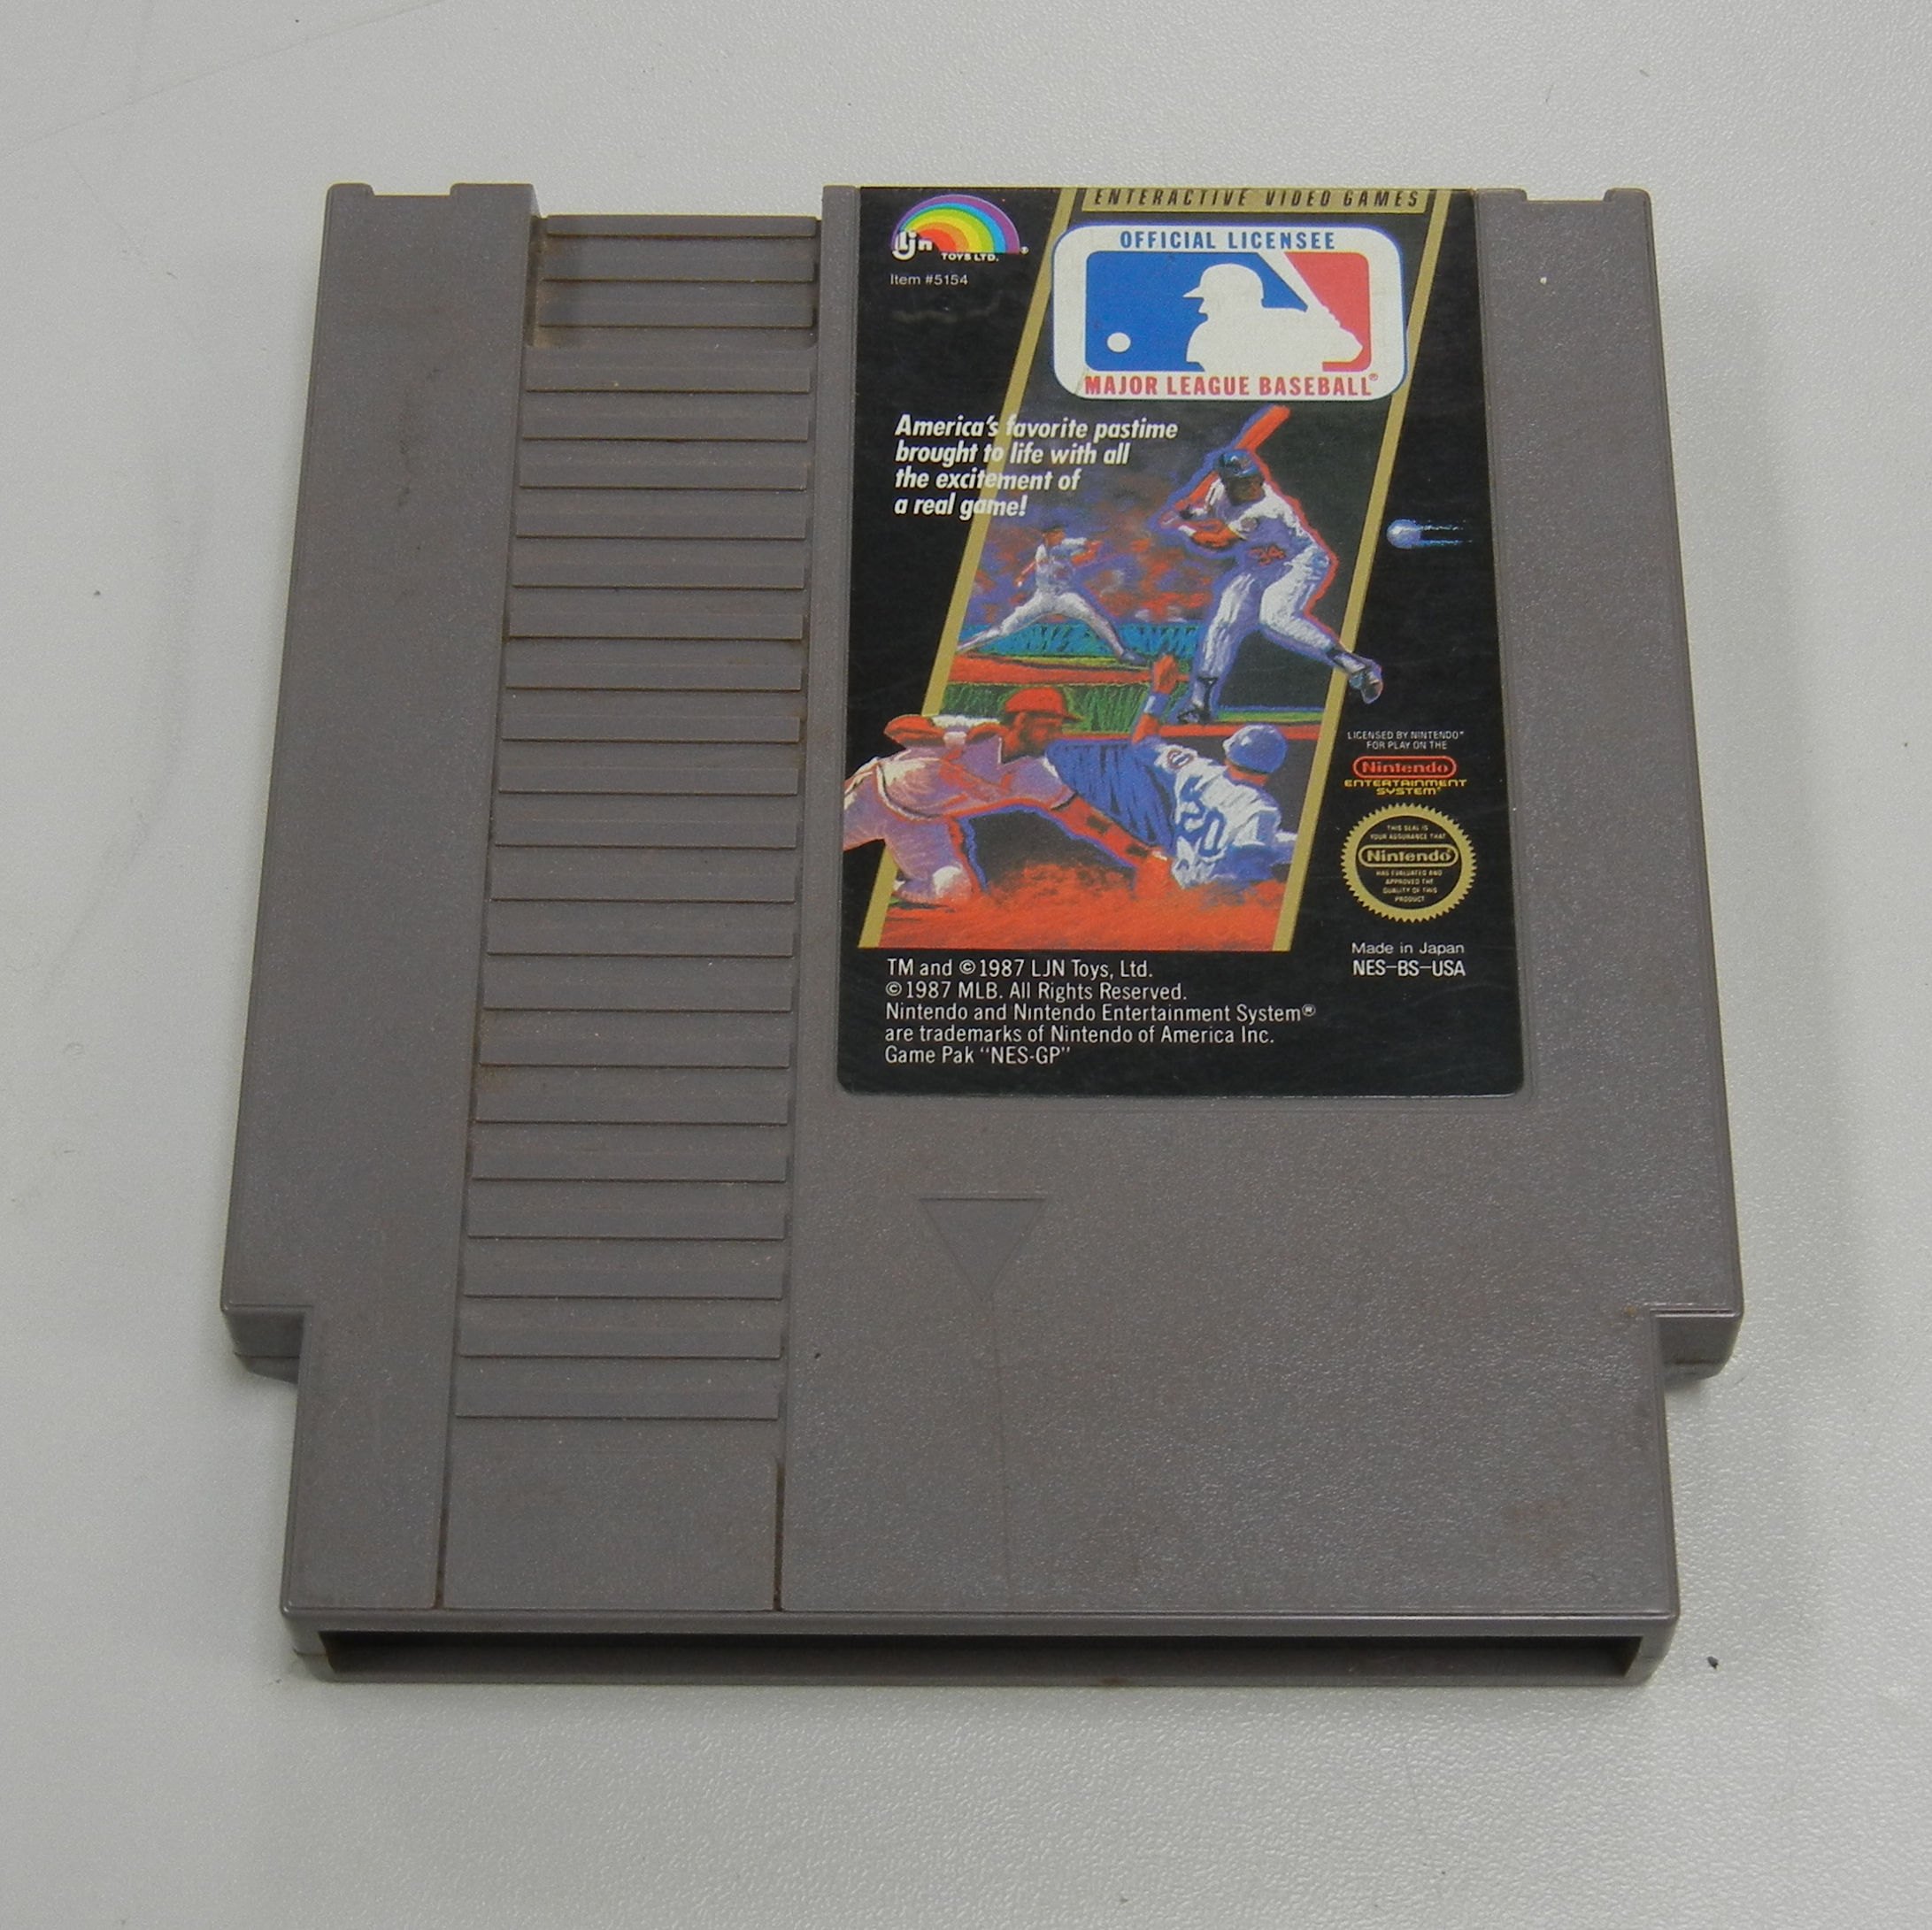 MAJOR LEAGUE BASEBALL NES GAME